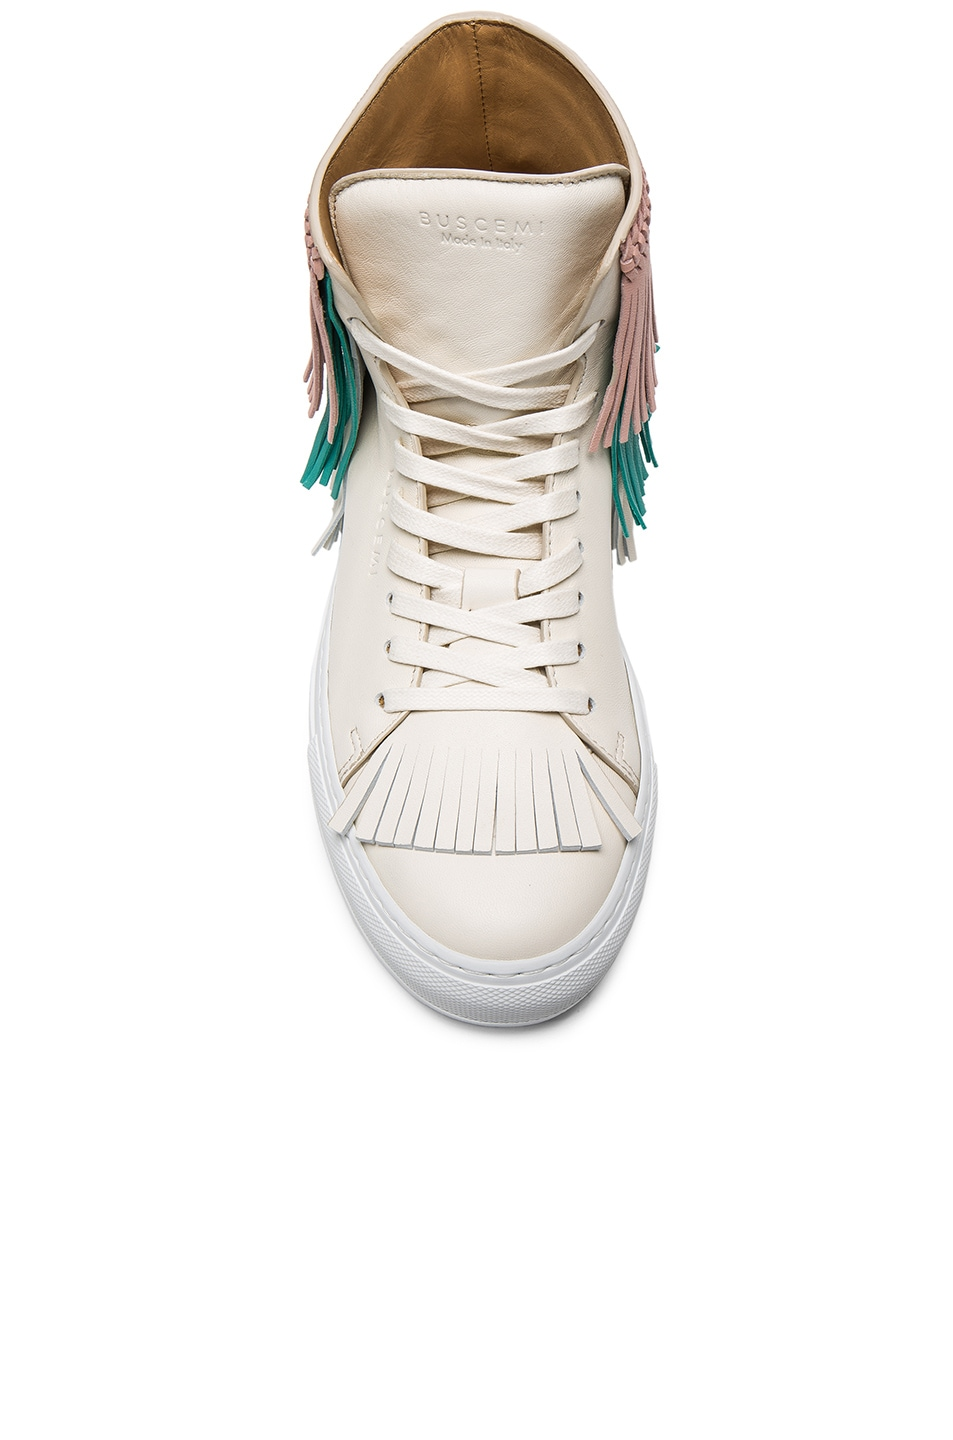 Image 4 of Buscemi 125MM Leather New Fringe Sneakers in Cream, Pink & Aqua Marine